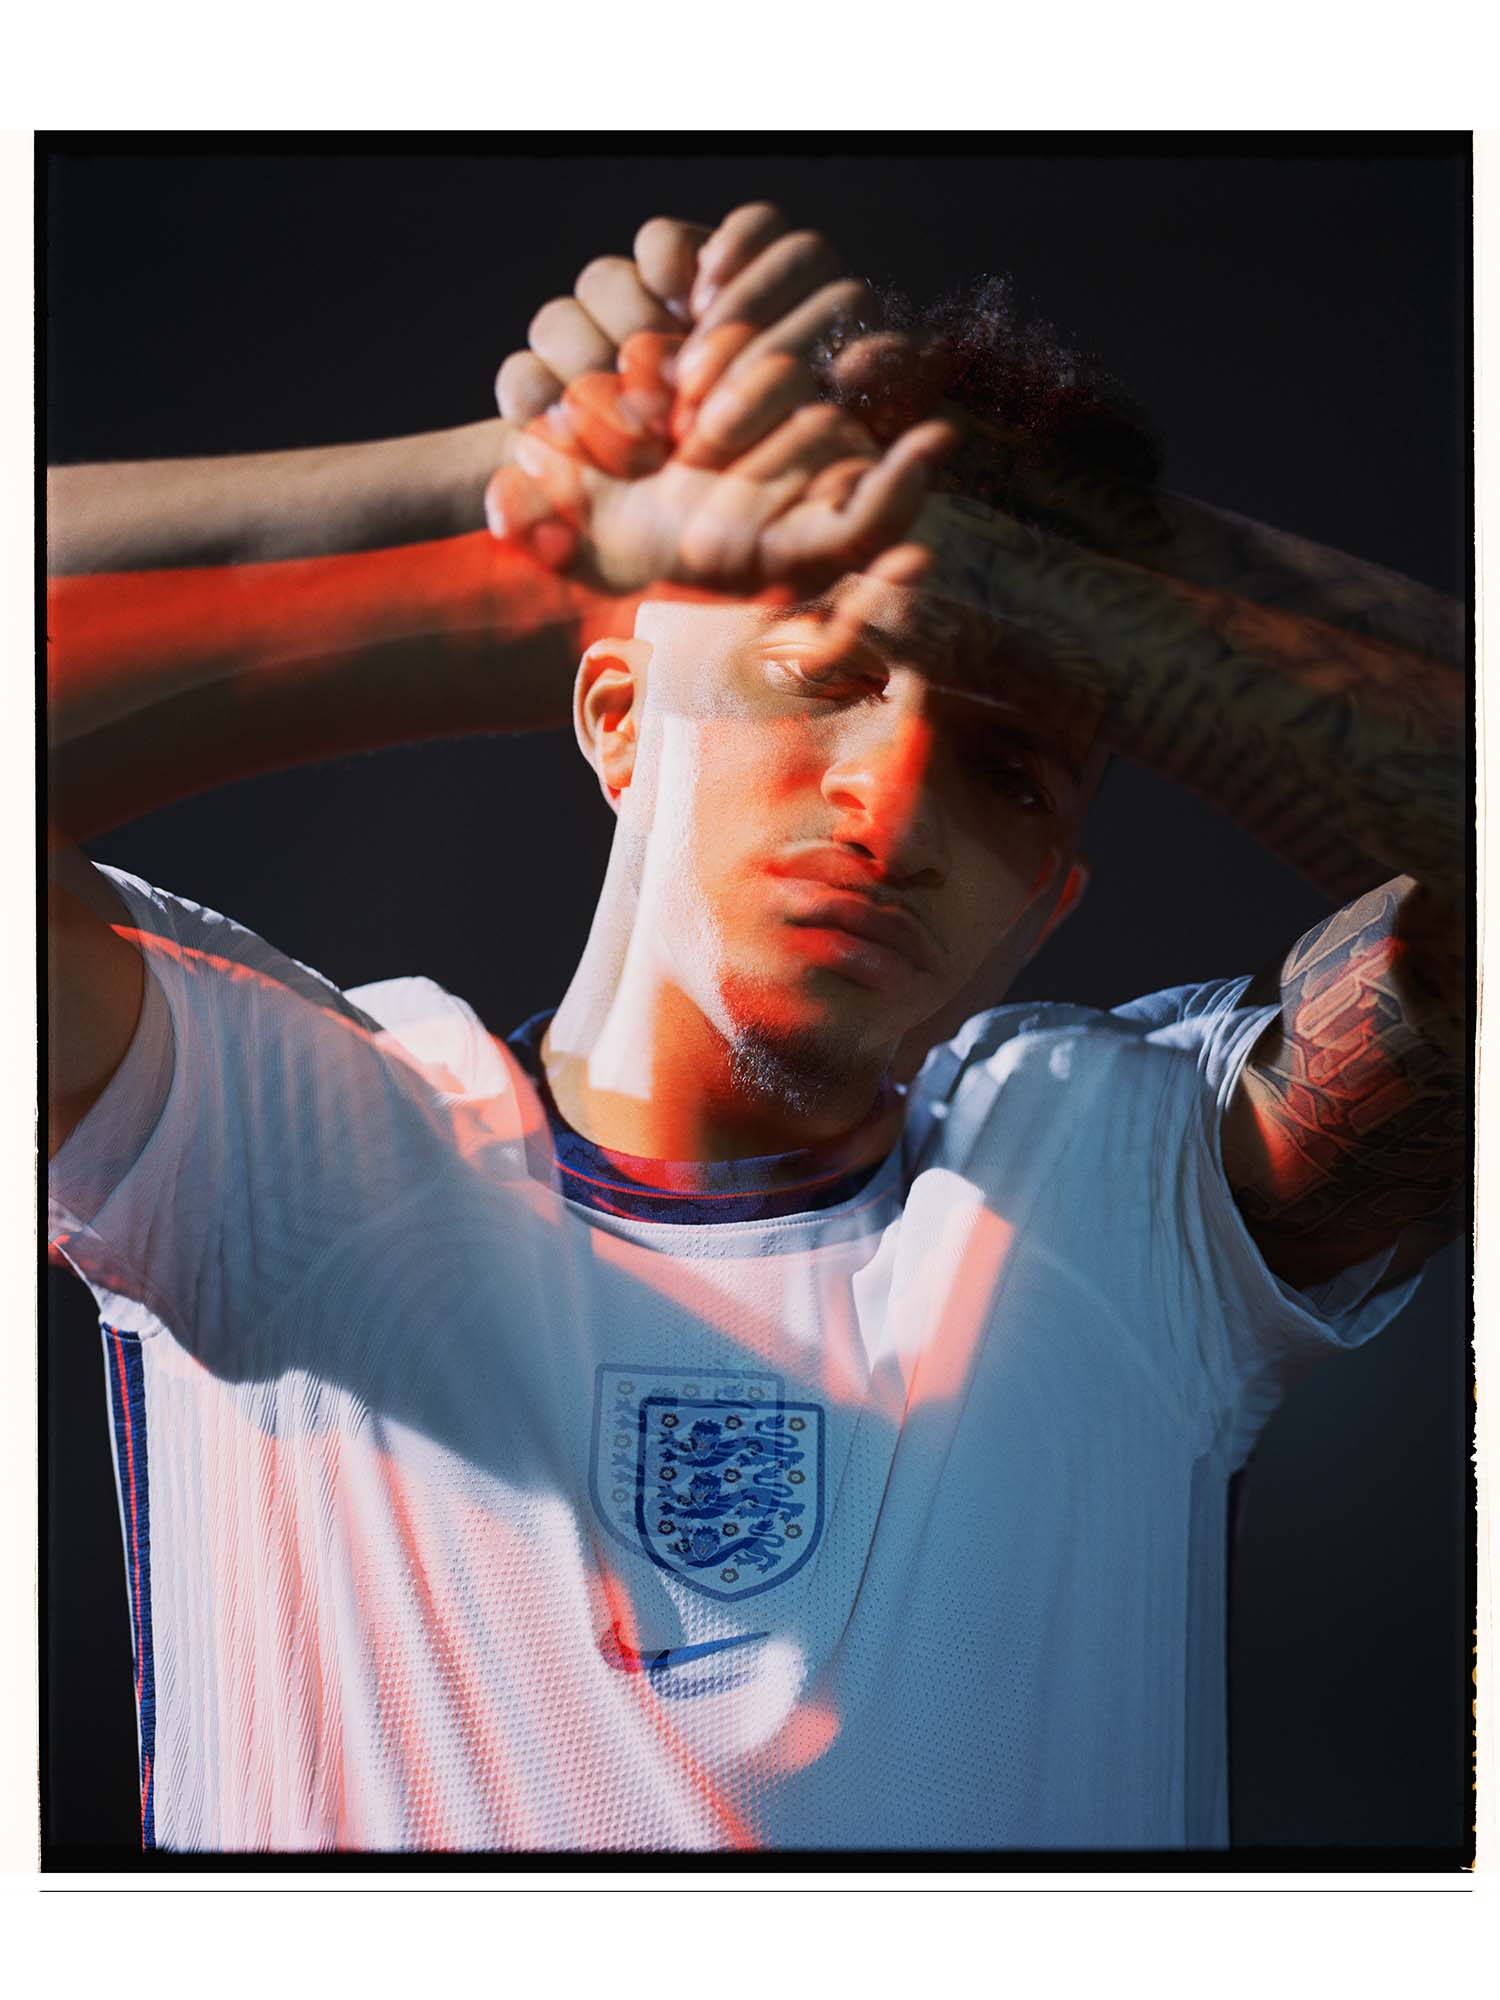 jadon sancho soccerbible interview england portrait_0009_jph190820_ 001.jpg